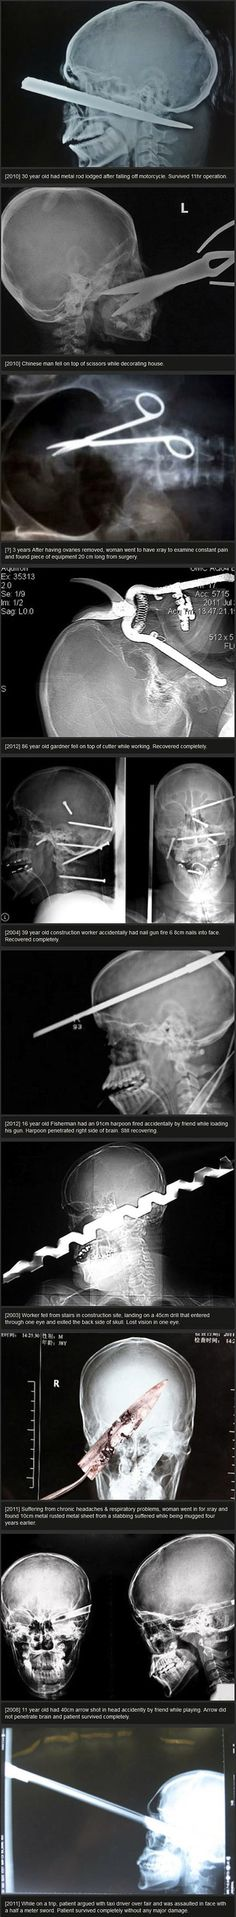 Funny pictures about Some of the most bizarre X-Rays. Oh, and cool pics about Some of the most bizarre X-Rays. Also, Some of the most bizarre X-Rays. Medical Humor, Radiology Humor, Surgical Tech, Science, Med School, Thing 1, Physiology, Mind Blown, Just In Case